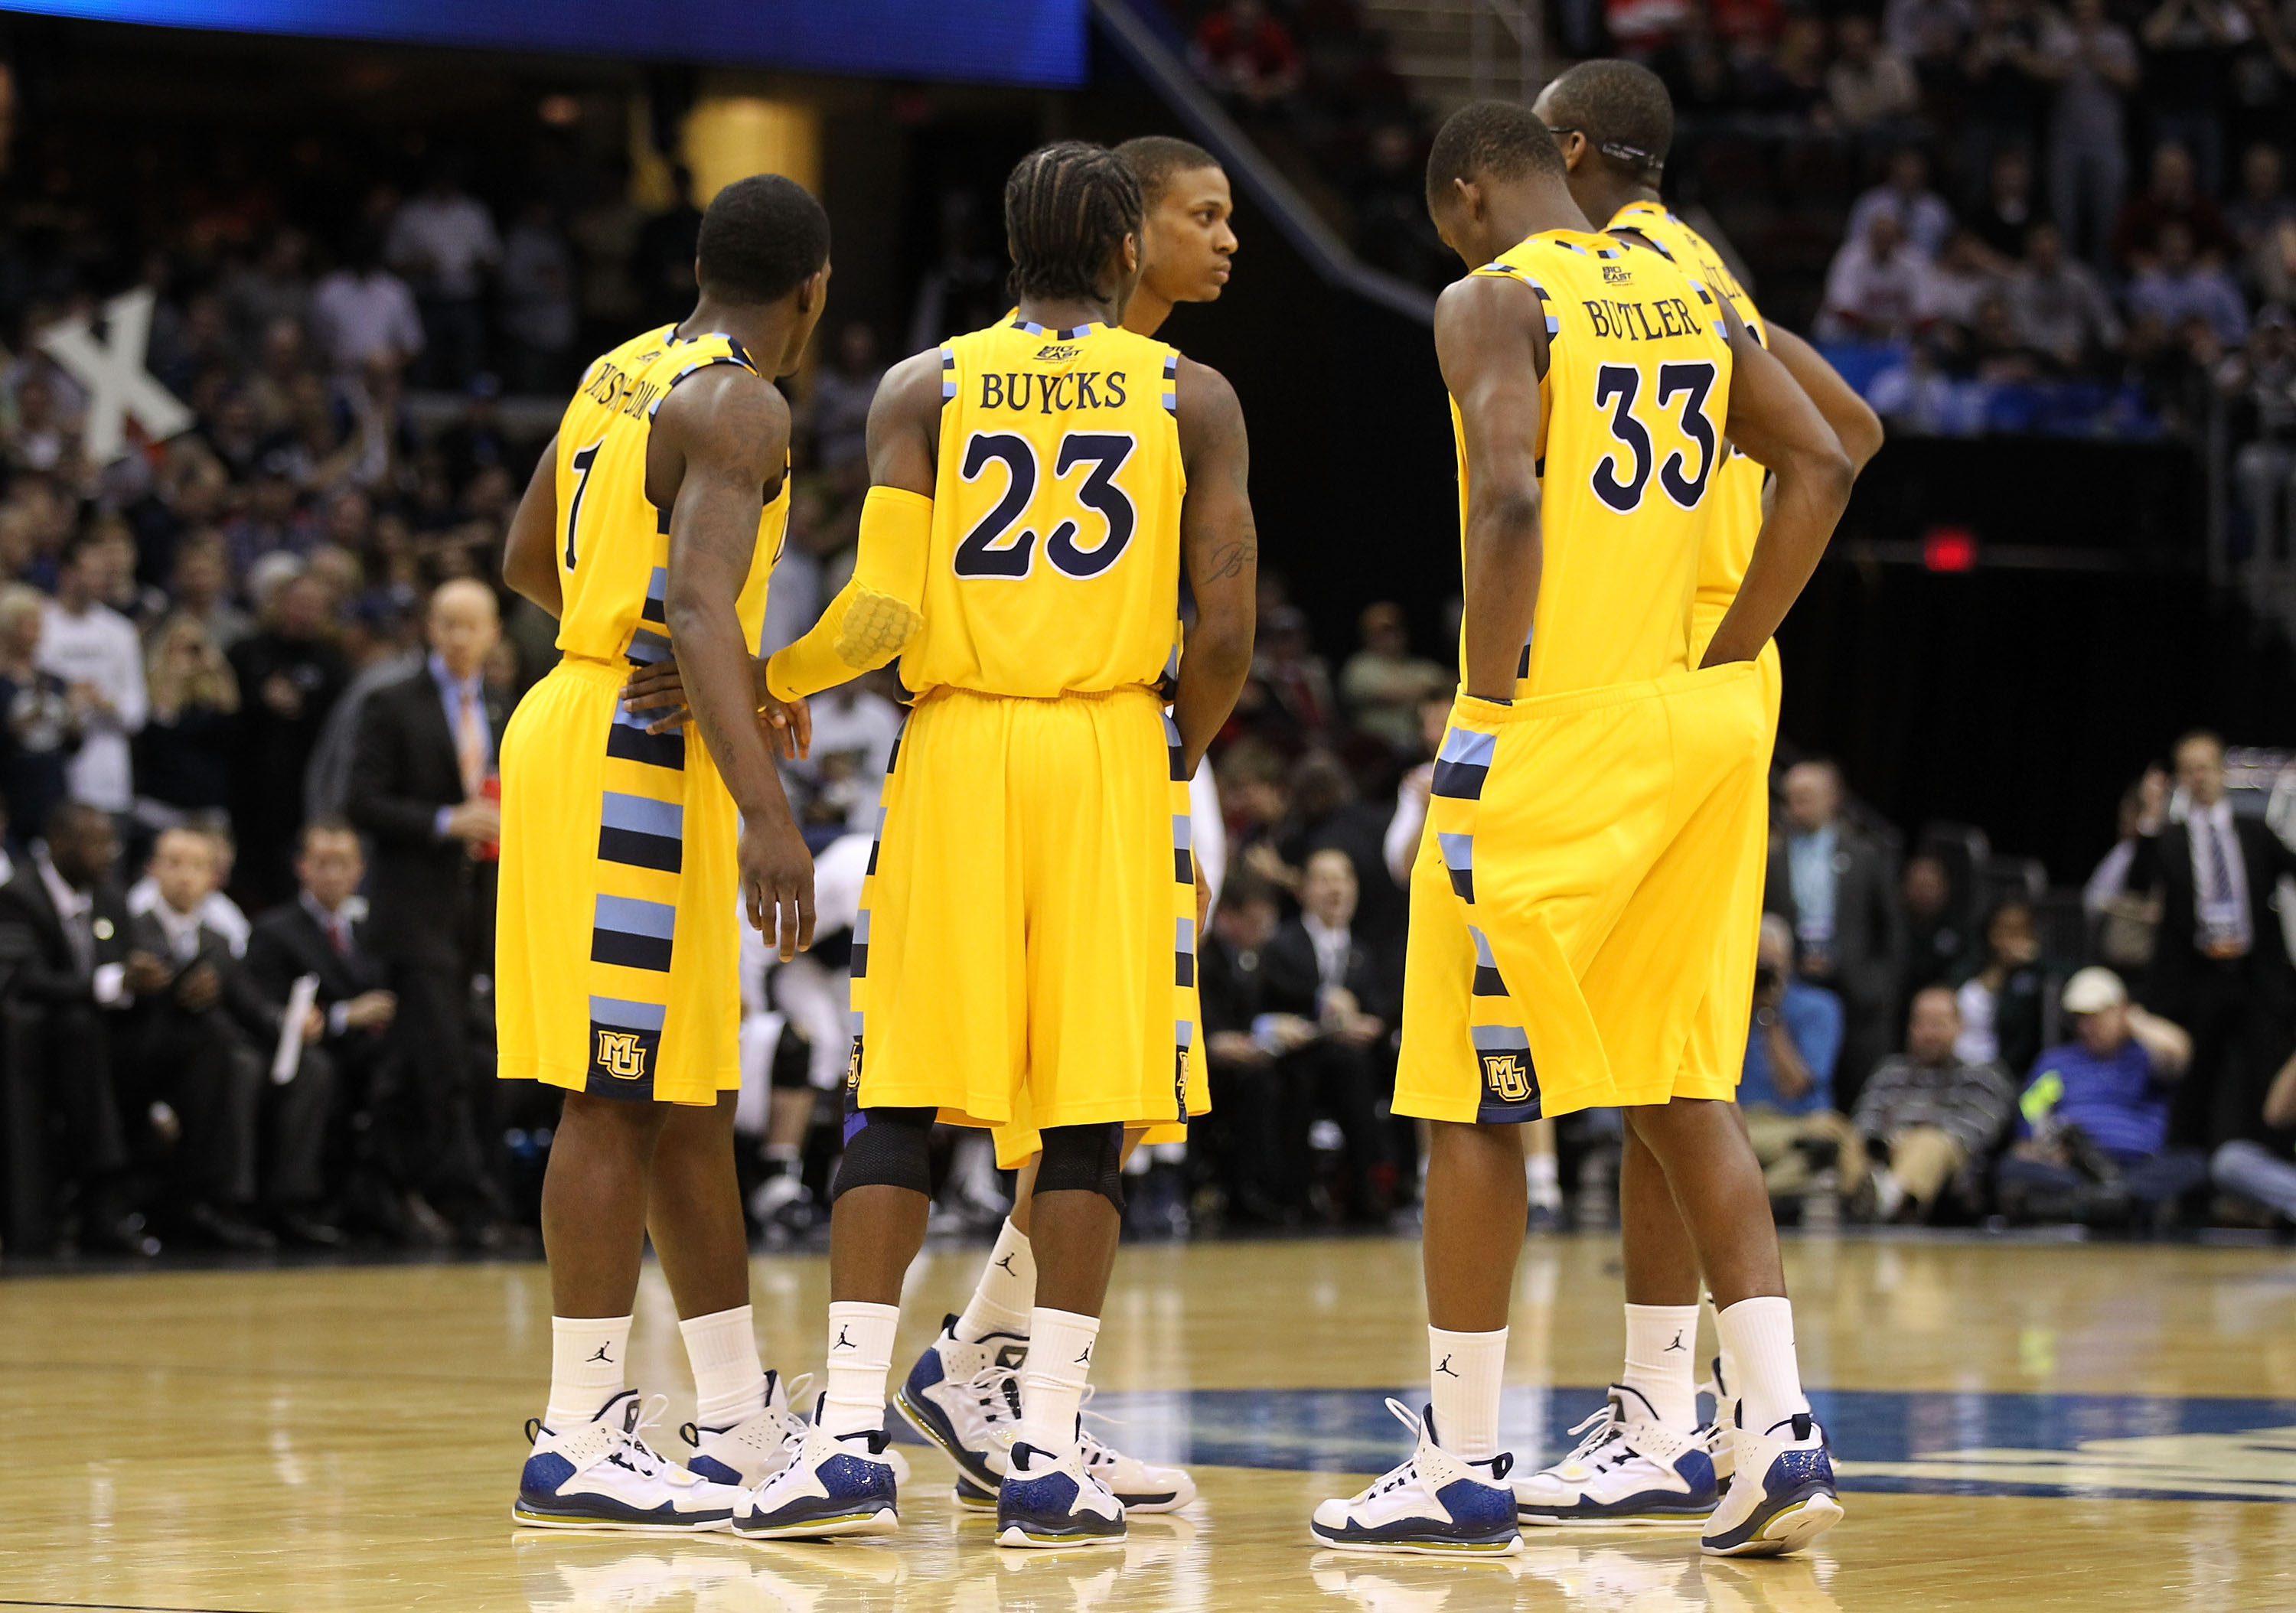 CLEVELAND, OH - MARCH 18: Darius Johnson-Odom #1, Dwight Buycks #23 and Jimmy Butler #33 of the Marquette Golden Eagles huddle with teammates during the game against the Xavier Musketeers during the second round of the 2011 NCAA men's basketball tournamen